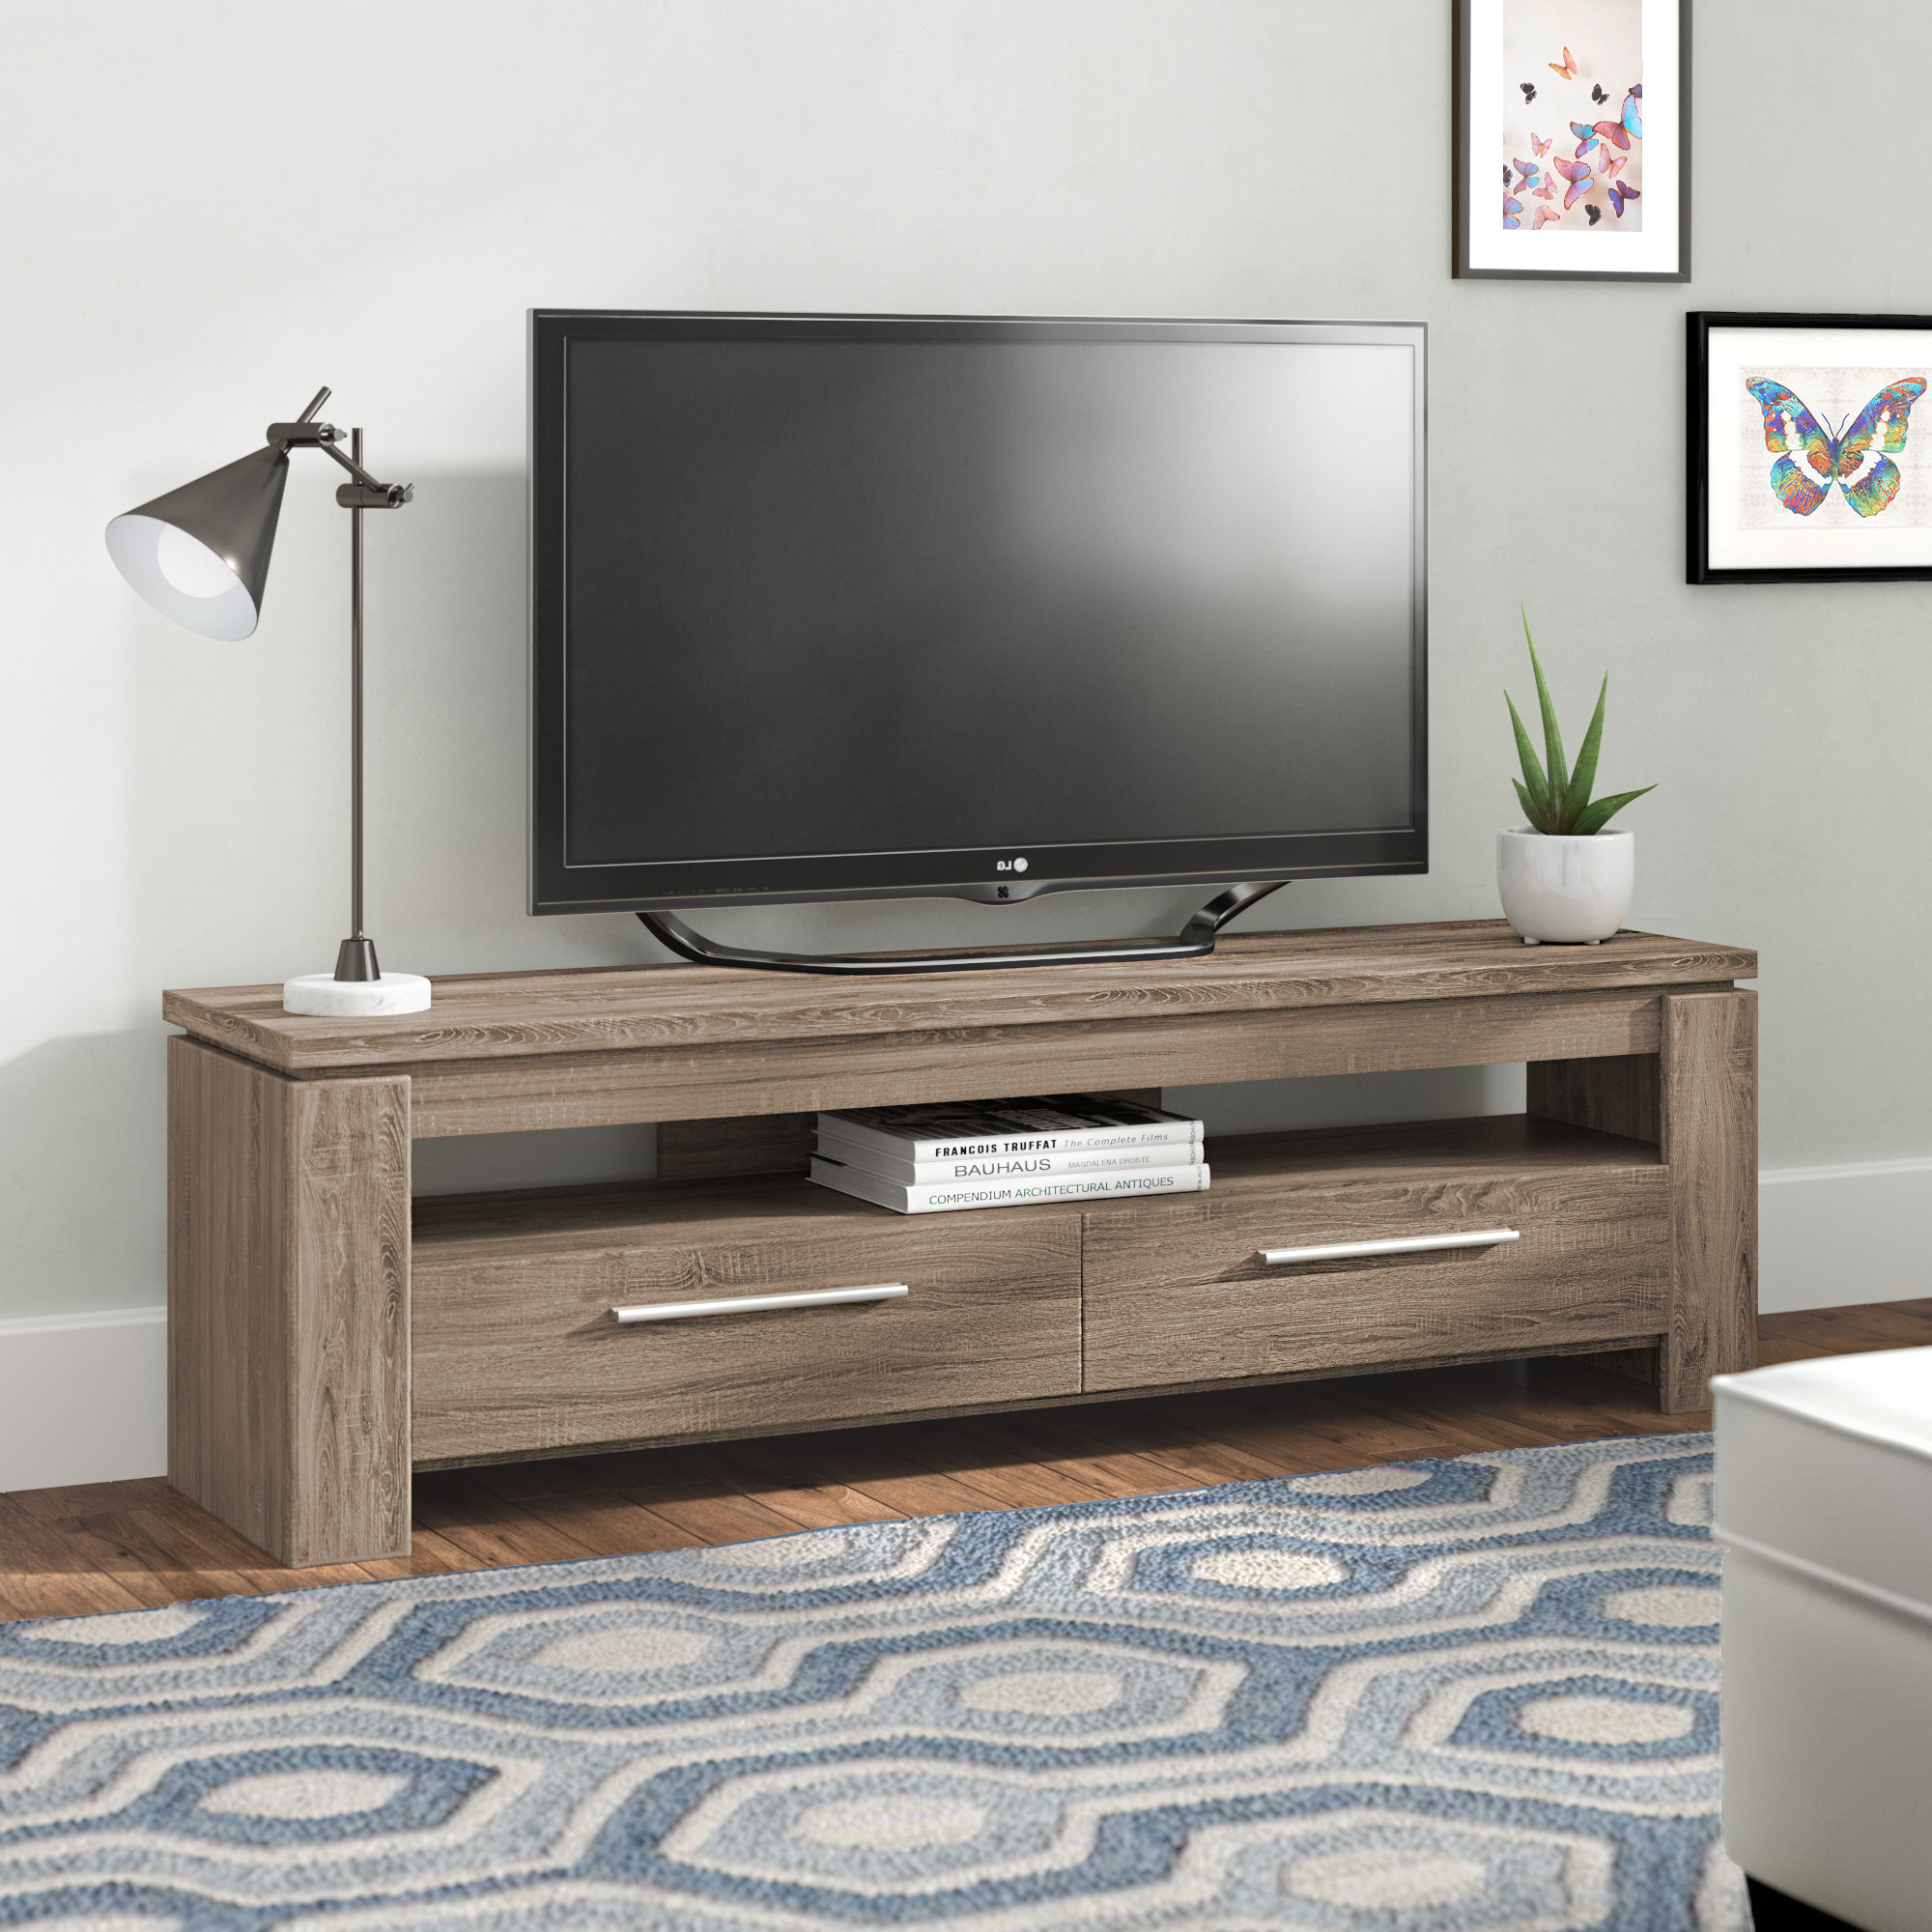 Mercury Row Rorie Tv Stand & Reviews | Wayfair Intended For Lauderdale 62 Inch Tv Stands (View 5 of 30)